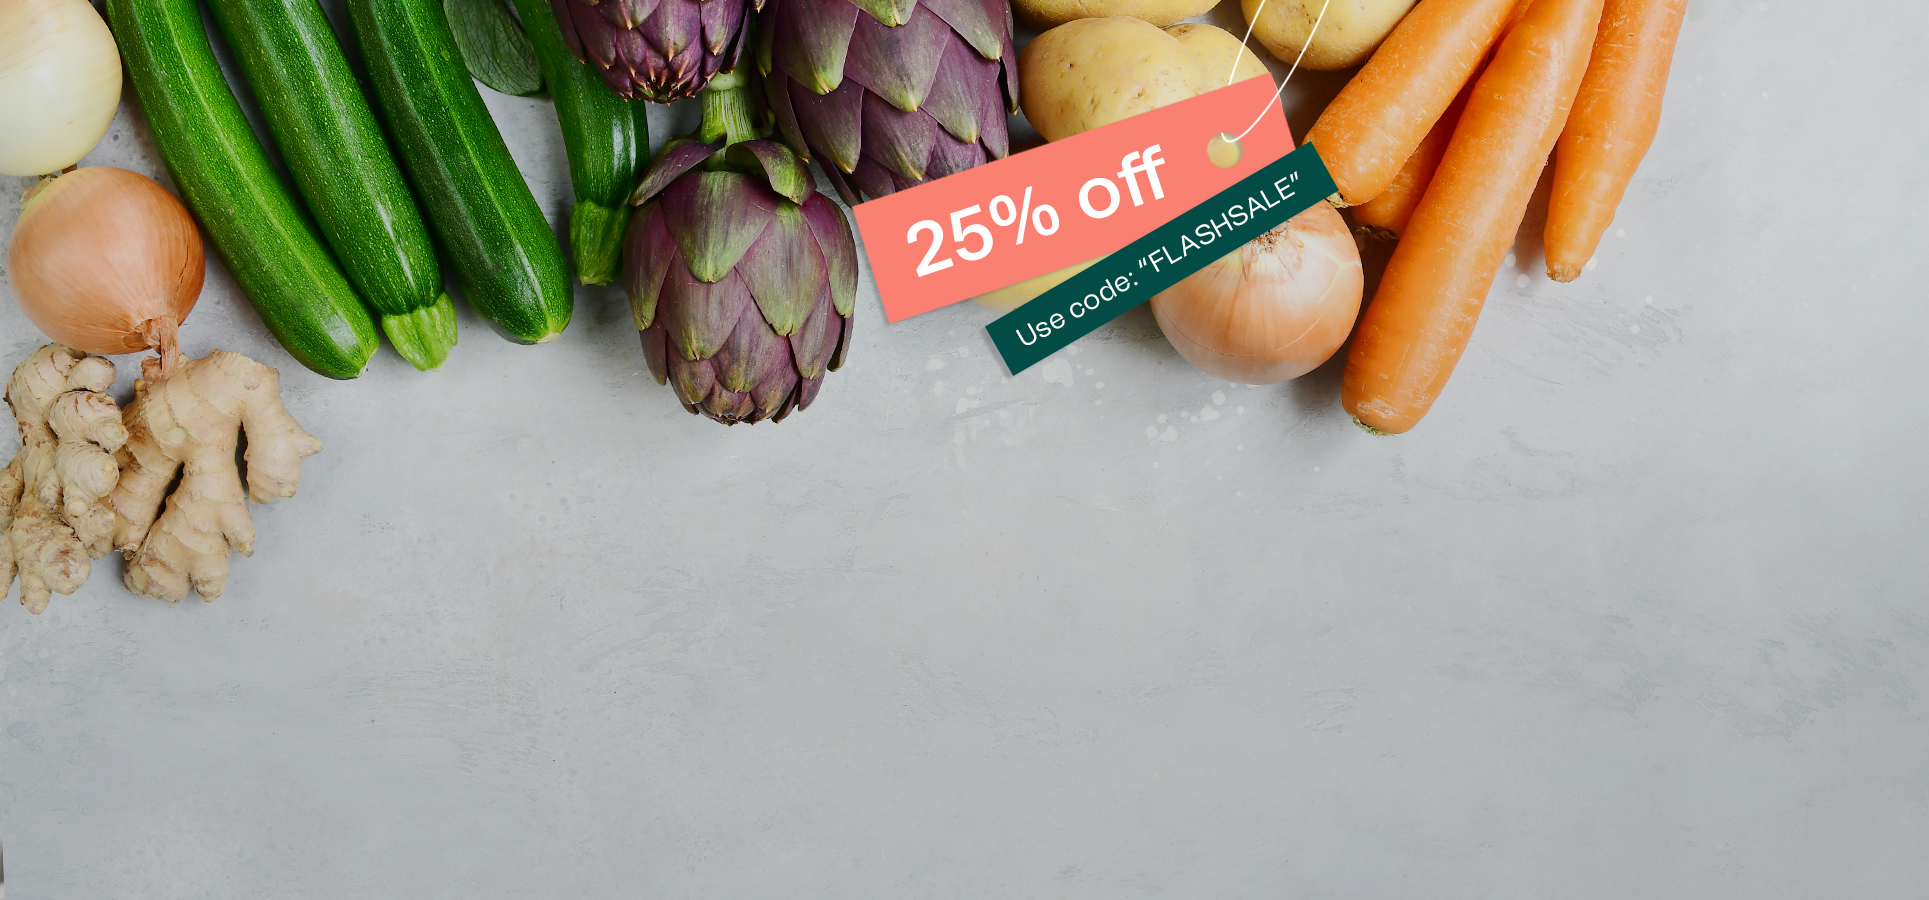 Last Chance! 25% off every category!